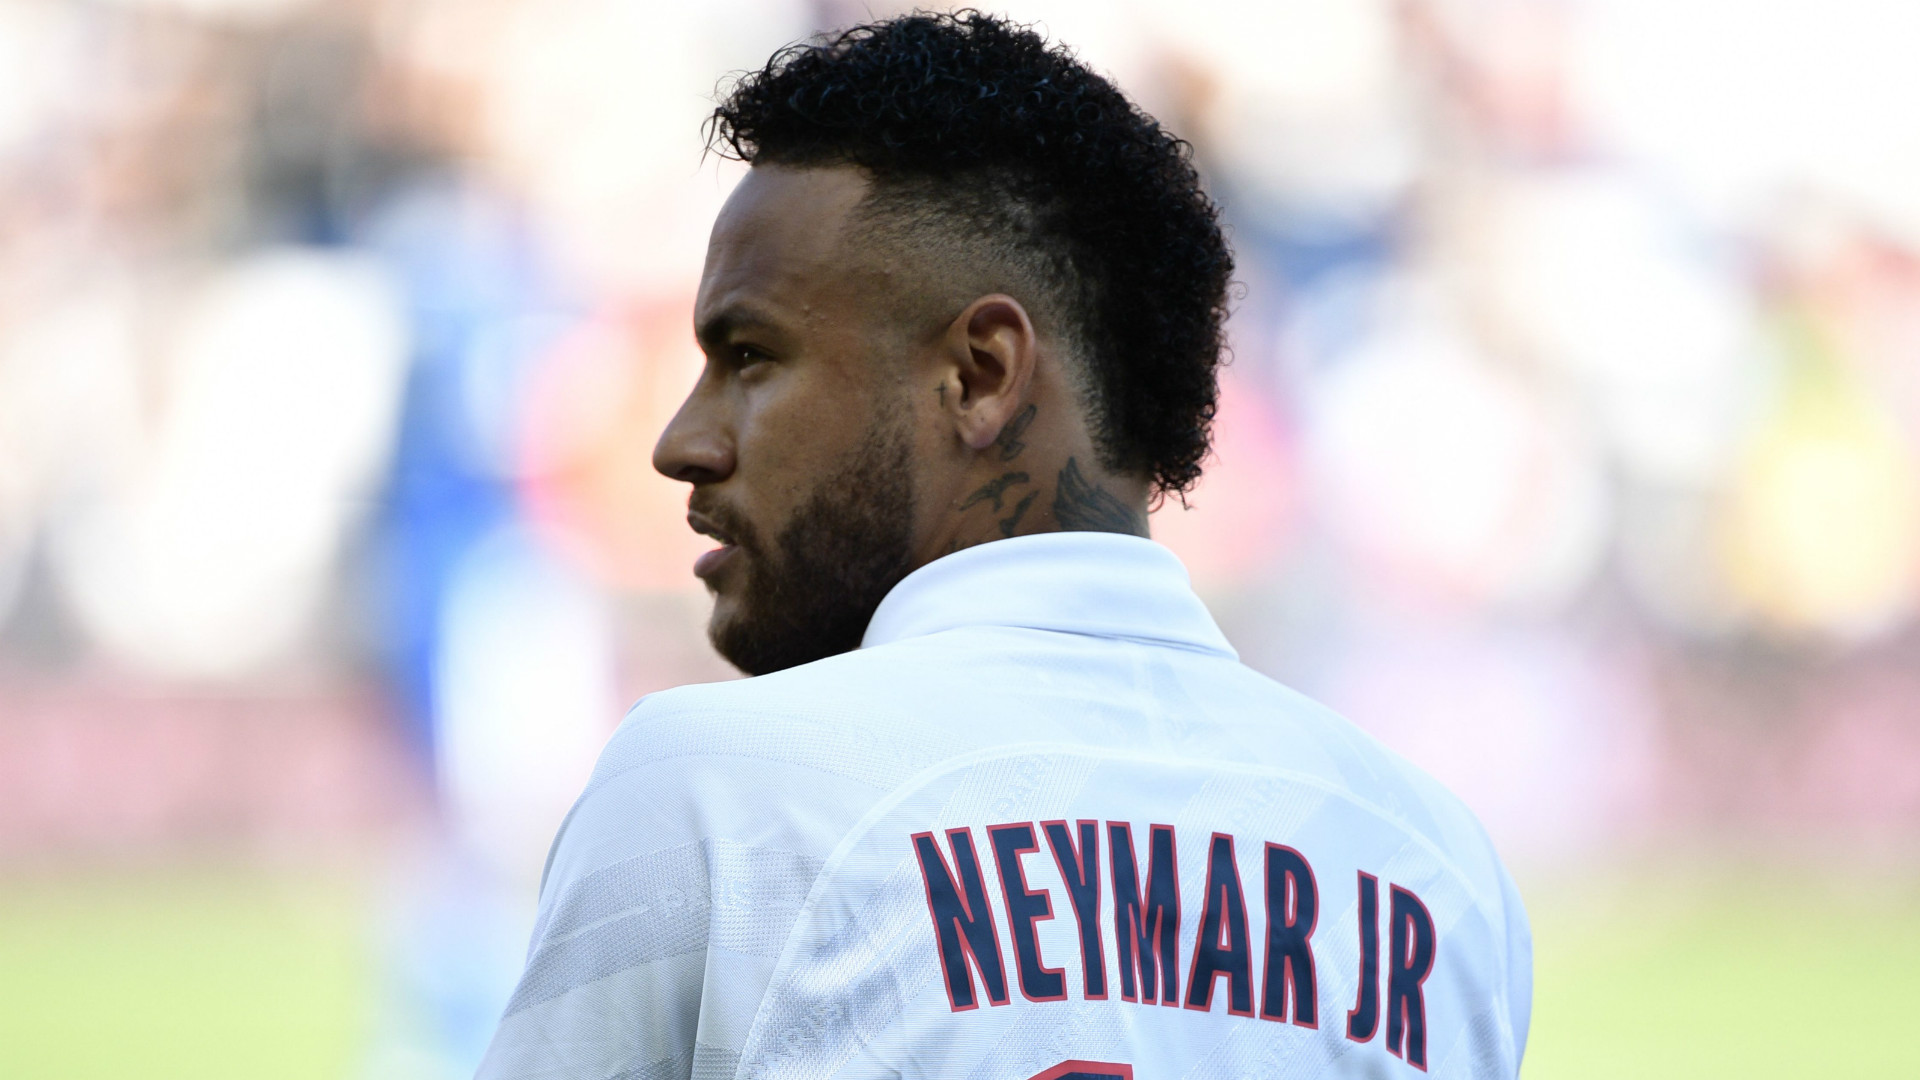 'No more wh**es in Paris!' - PSG fans barrack Neymar on return to first team